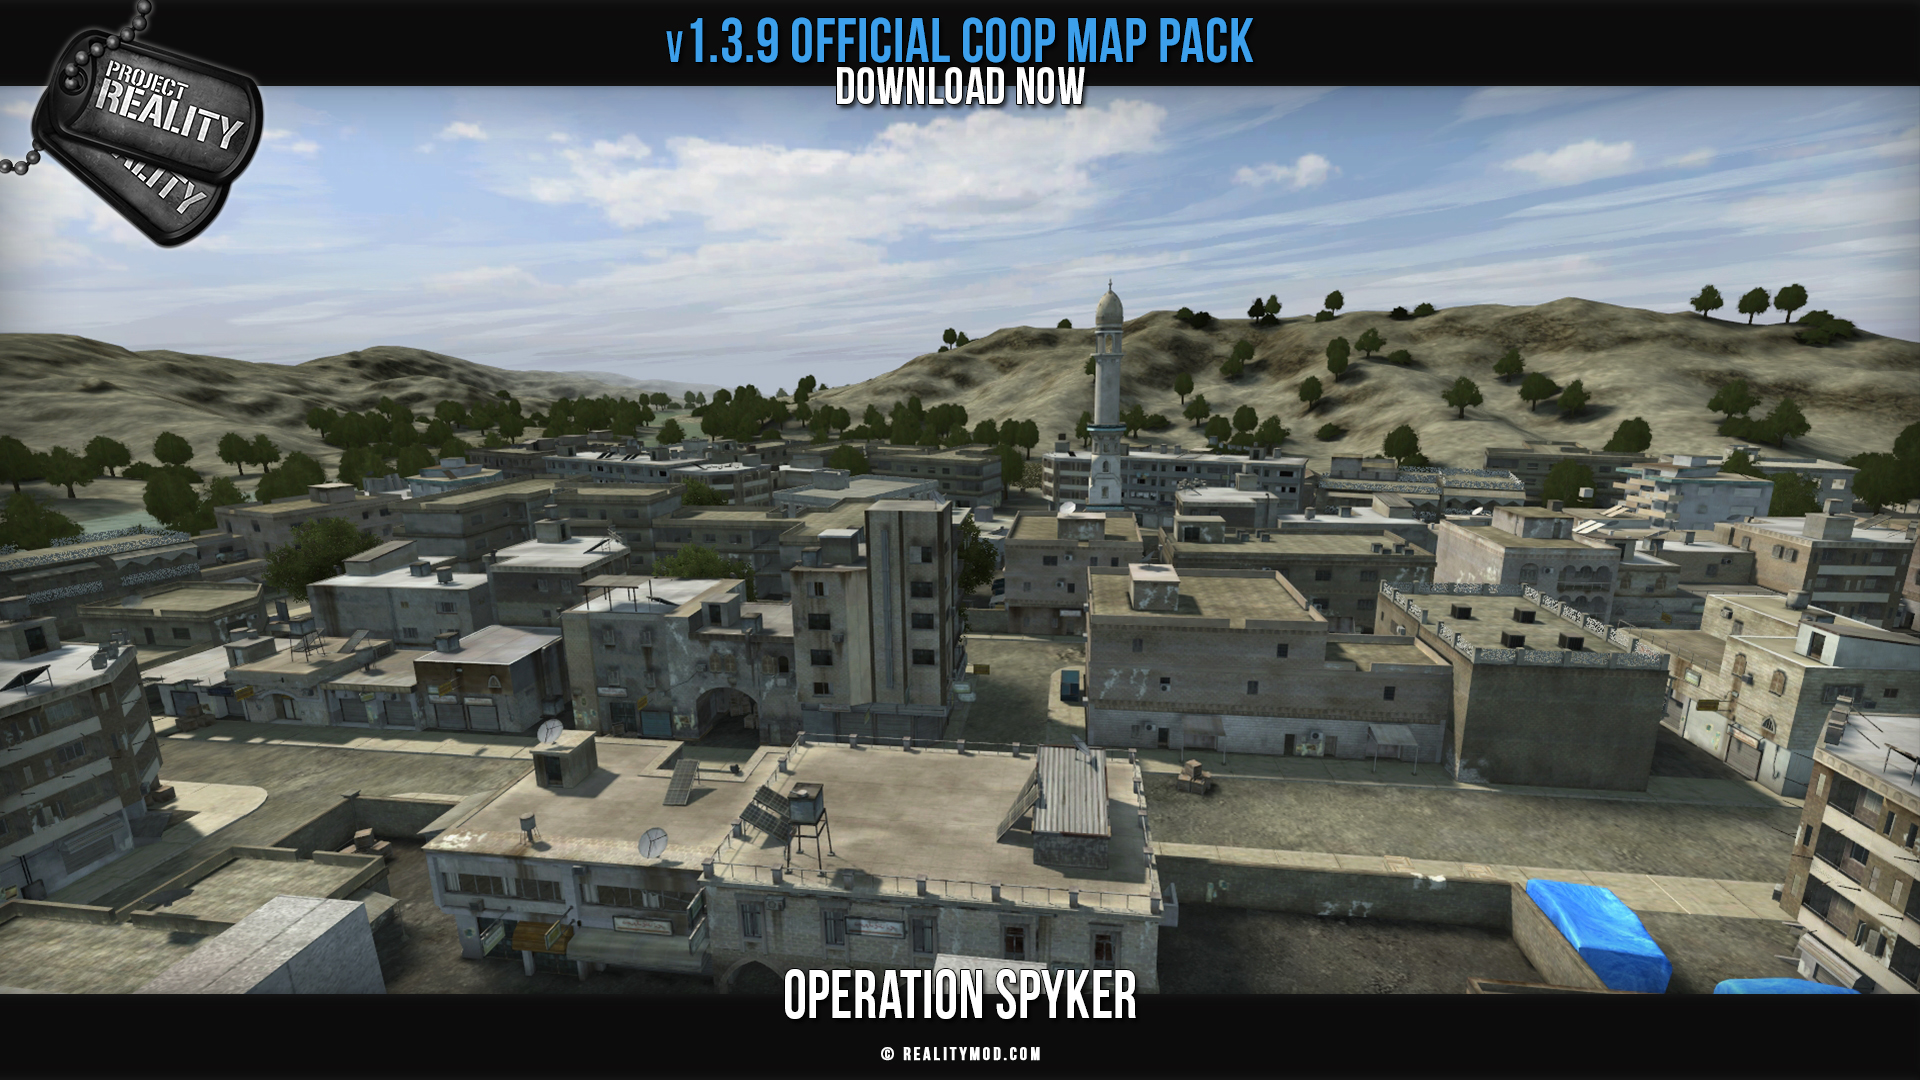 Prbf2 official coop map pack released battlefield singleplayer forum imghttpmediaalitymodnewsprsp139mappack7thumbg gumiabroncs Images